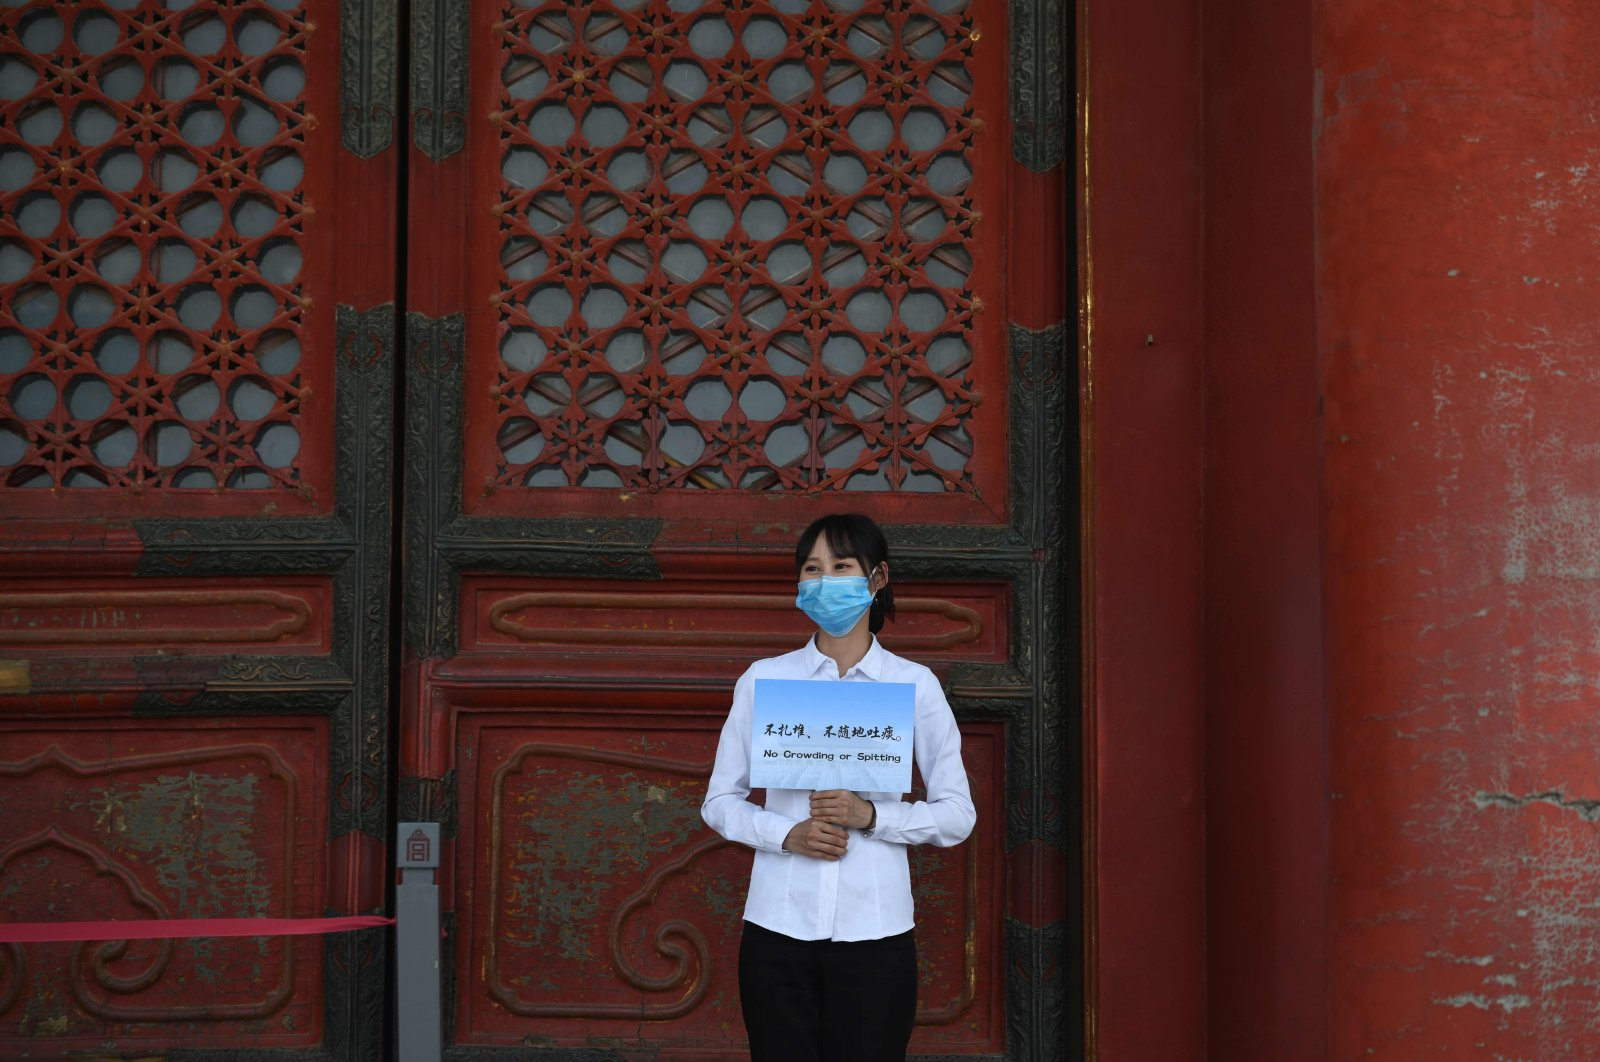 """An staff member wears a face mask as a preventive measure against the COVID-19 coronavirus as she holds a """"No crowding or spitting"""" sign in the Forbidden City, the former palace of China's emperors, in Beijing on May 1, 2020. (AFP Photo)"""